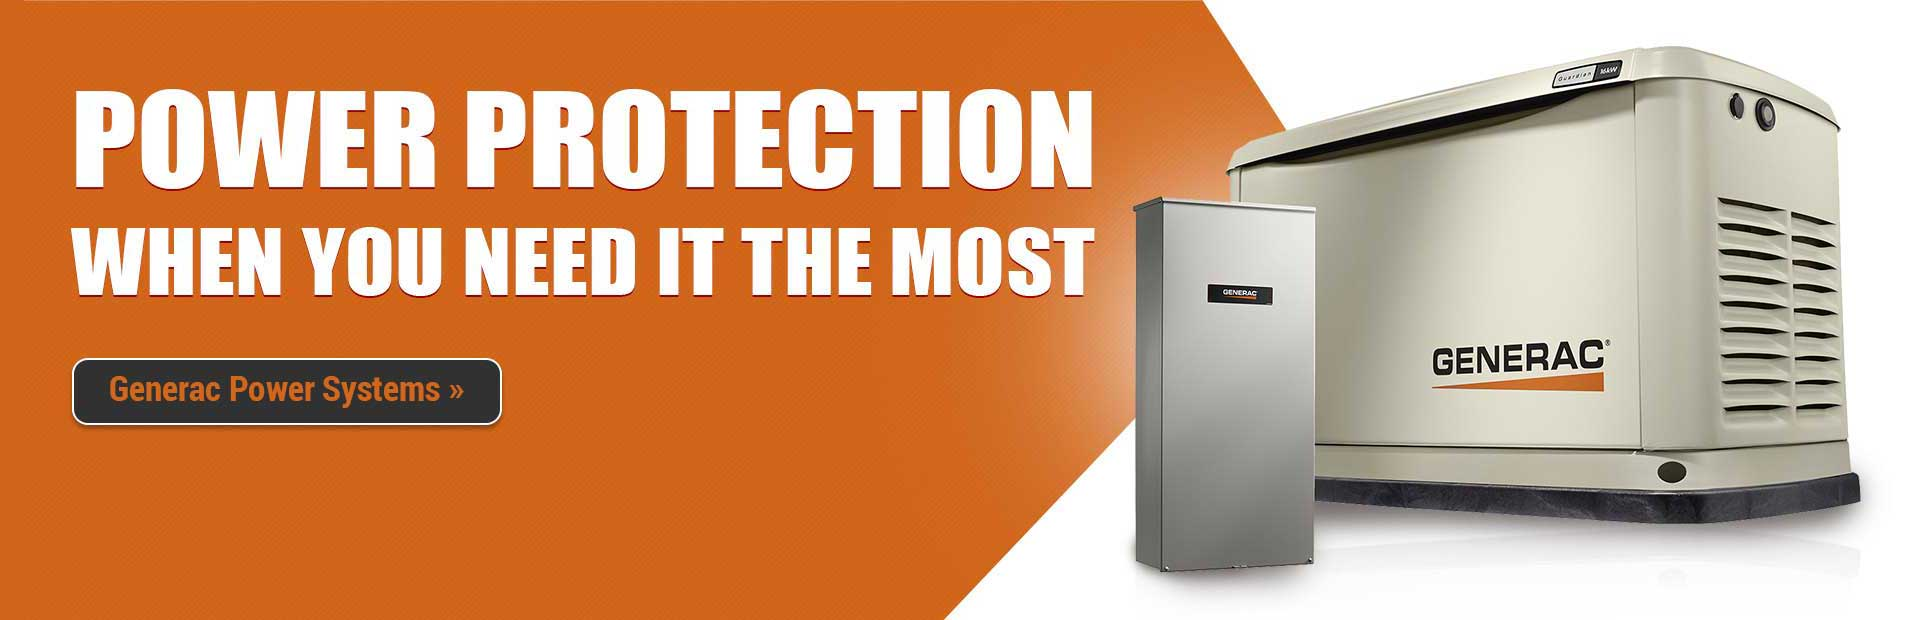 Generac Power Systems: Power Protection When You Need It the Most